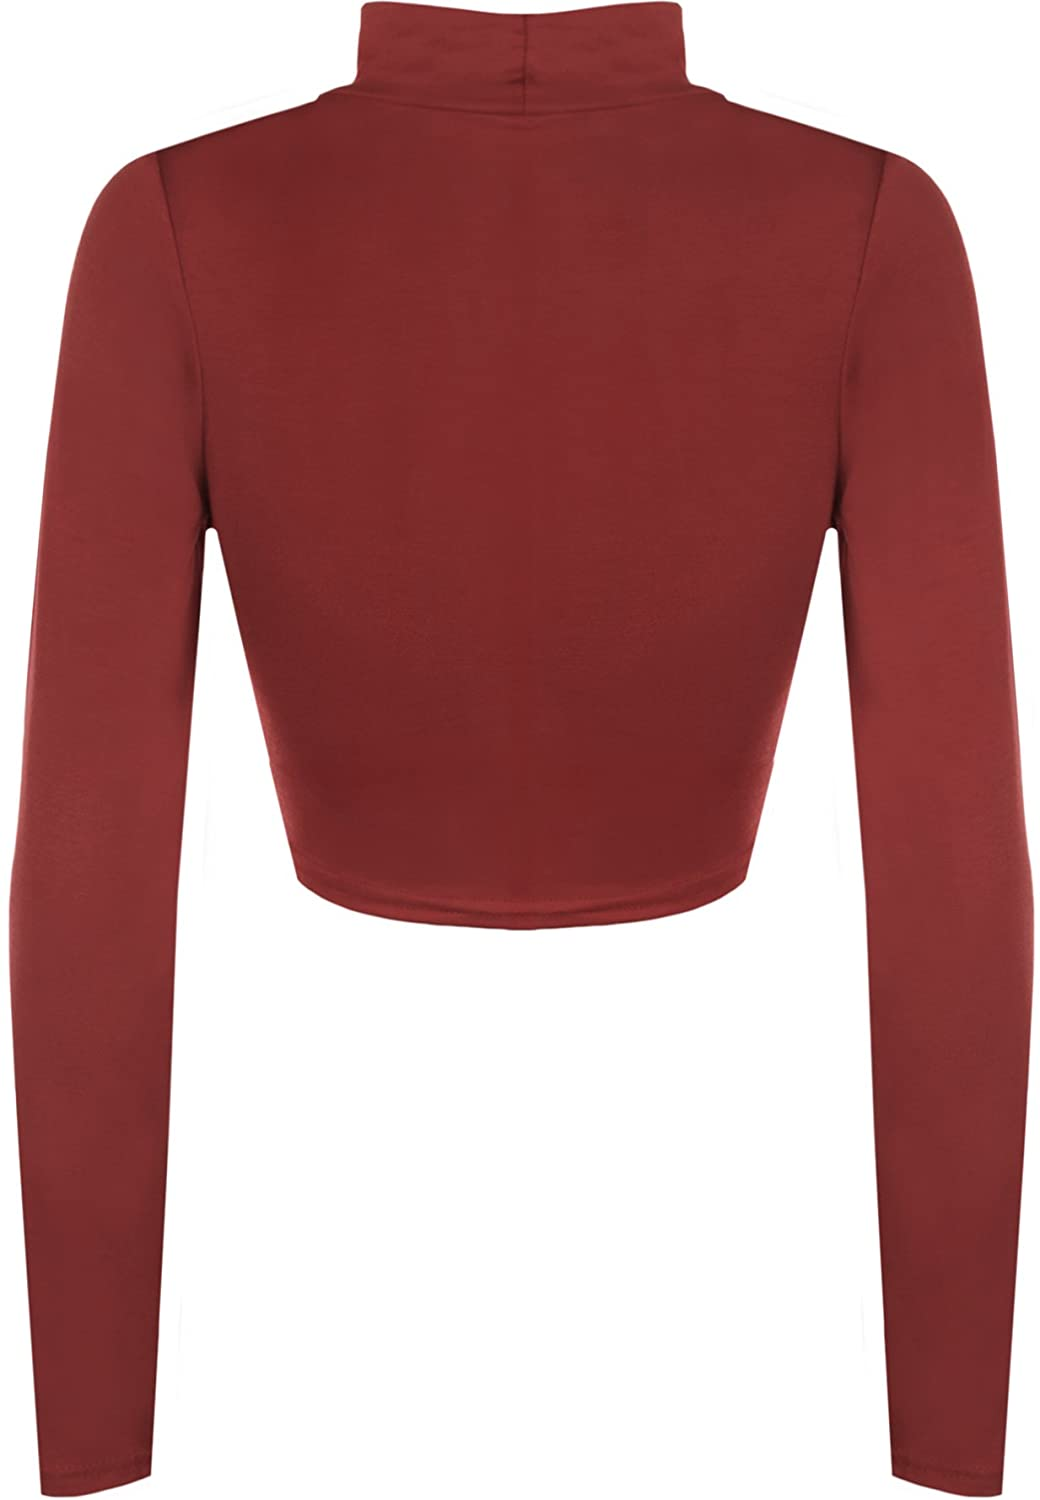 45b0d7c94 WearAll Womens Turtle Neck Crop Long Sleeve Plain Top at Amazon Women's  Clothing store: